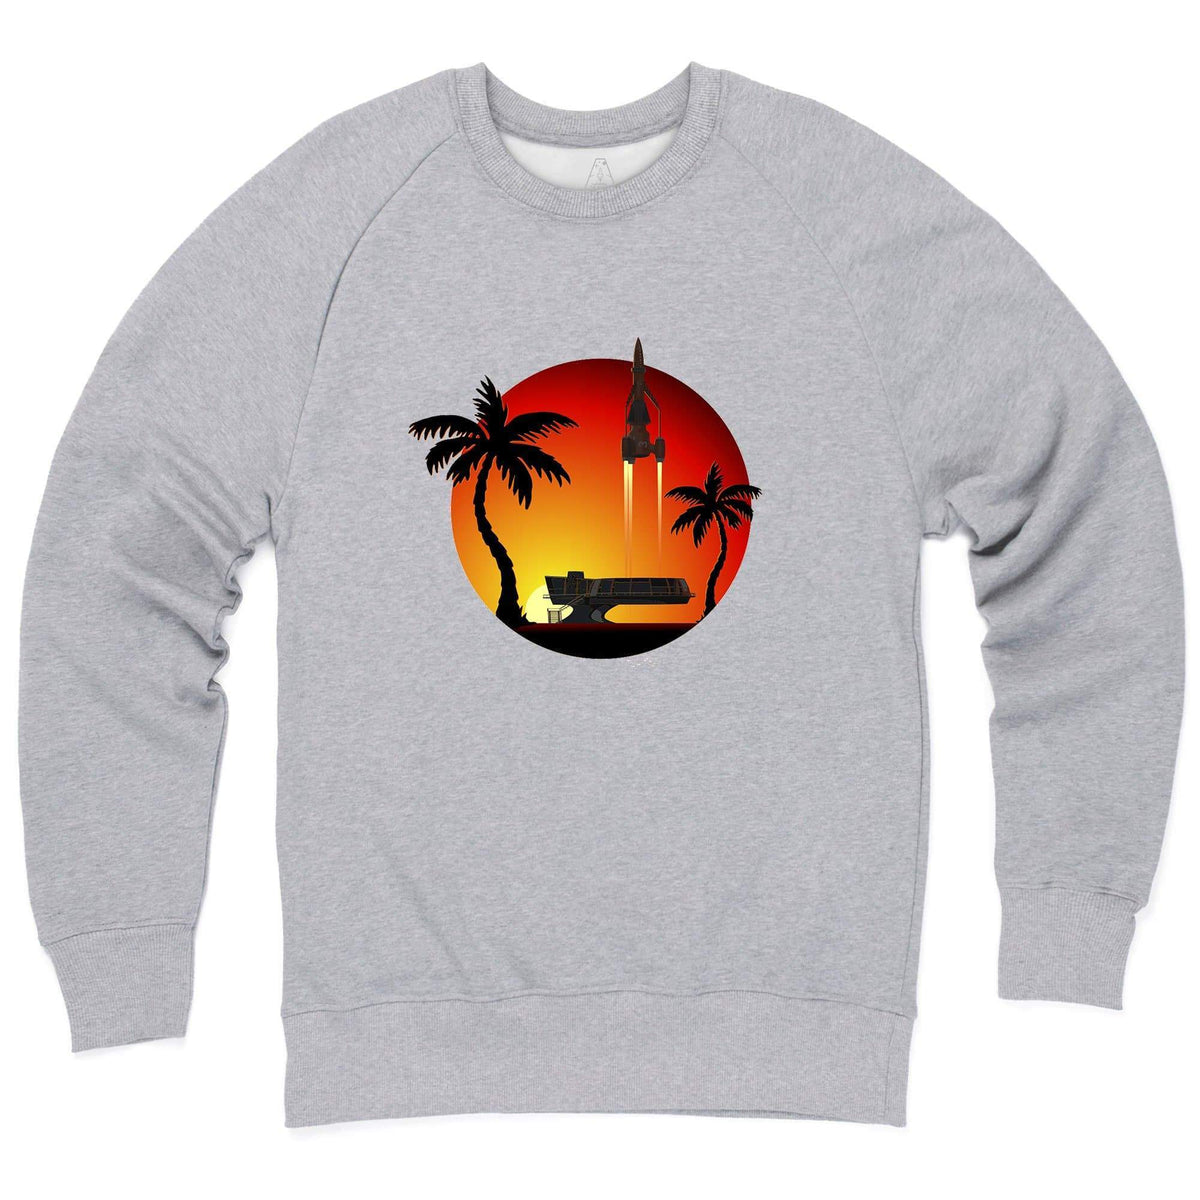 Thunderbird 3 Sunset Sweatshirt [Official & Exclusive] - The Gerry Anderson Store